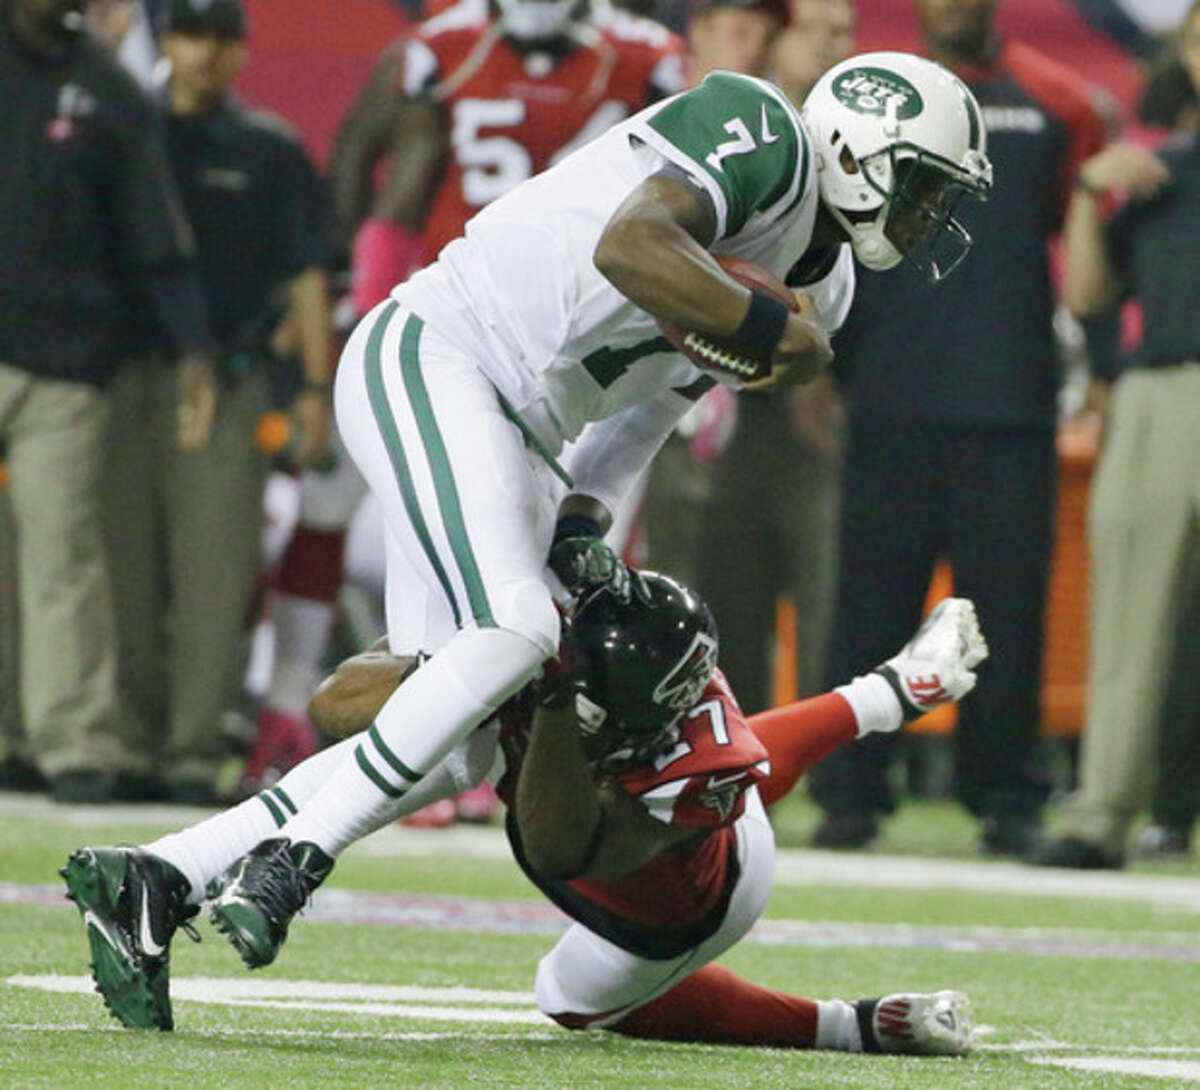 New York Jets quarterback Geno Smith (7) his hit in the open field by Atlanta Falcons cornerback Robert McClain (27) during the second half of an NFL football game, Monday, Oct. 7, 2013, in Atlanta. (AP Photo/David Goldman)